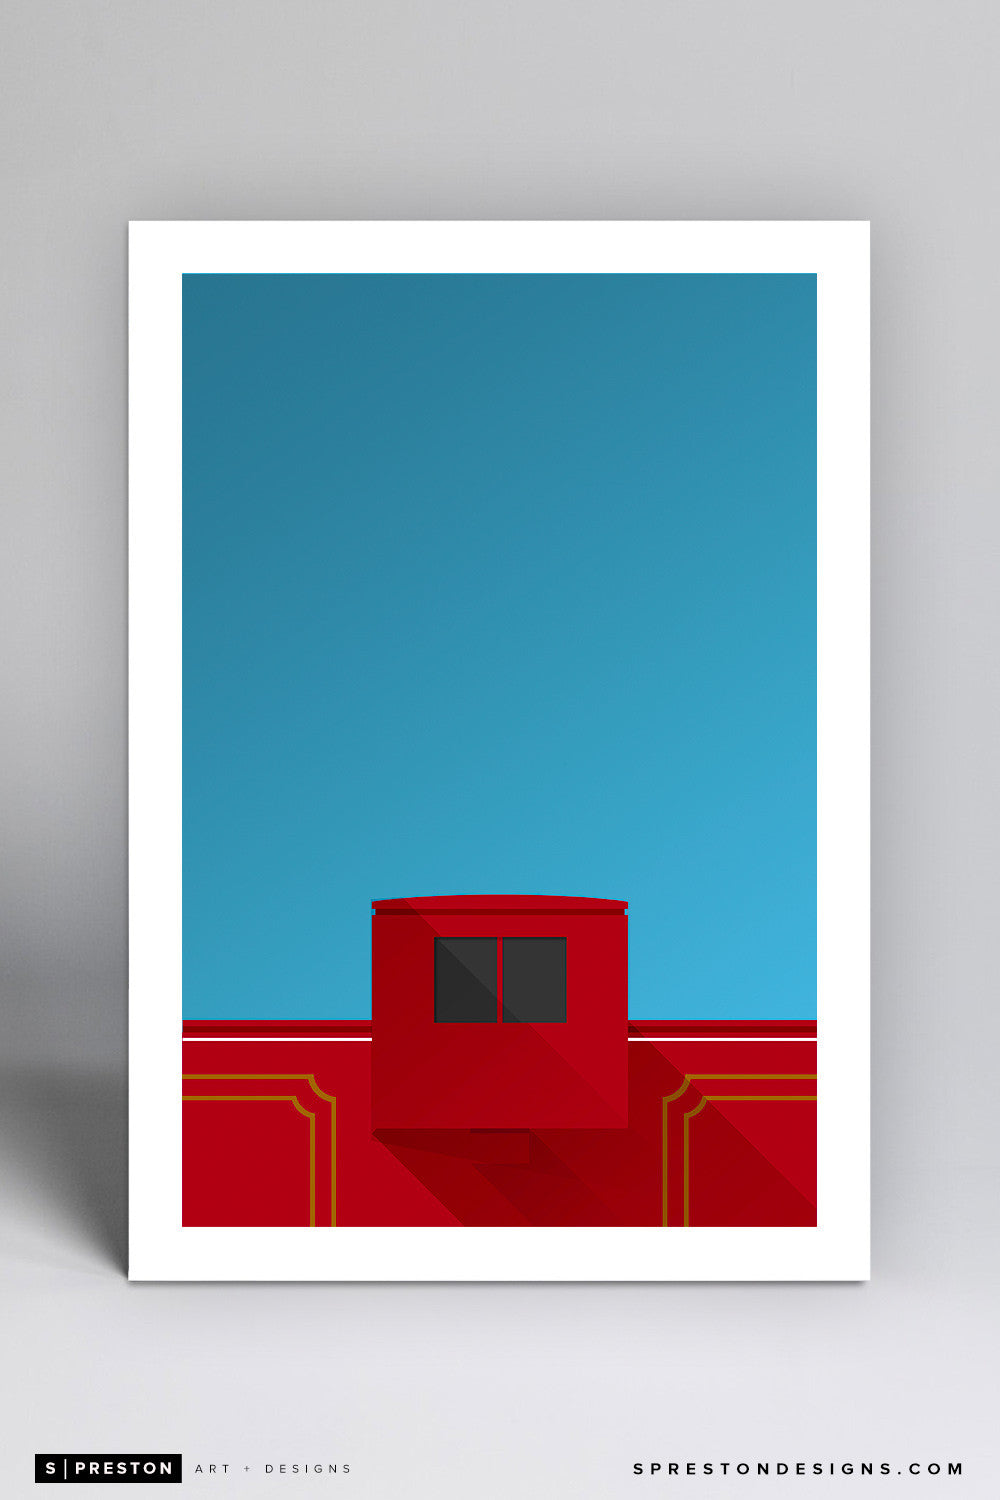 Minimalist Williams-Brice Stadium Art Print - University of South Carolina - S. Preston Art + Designs